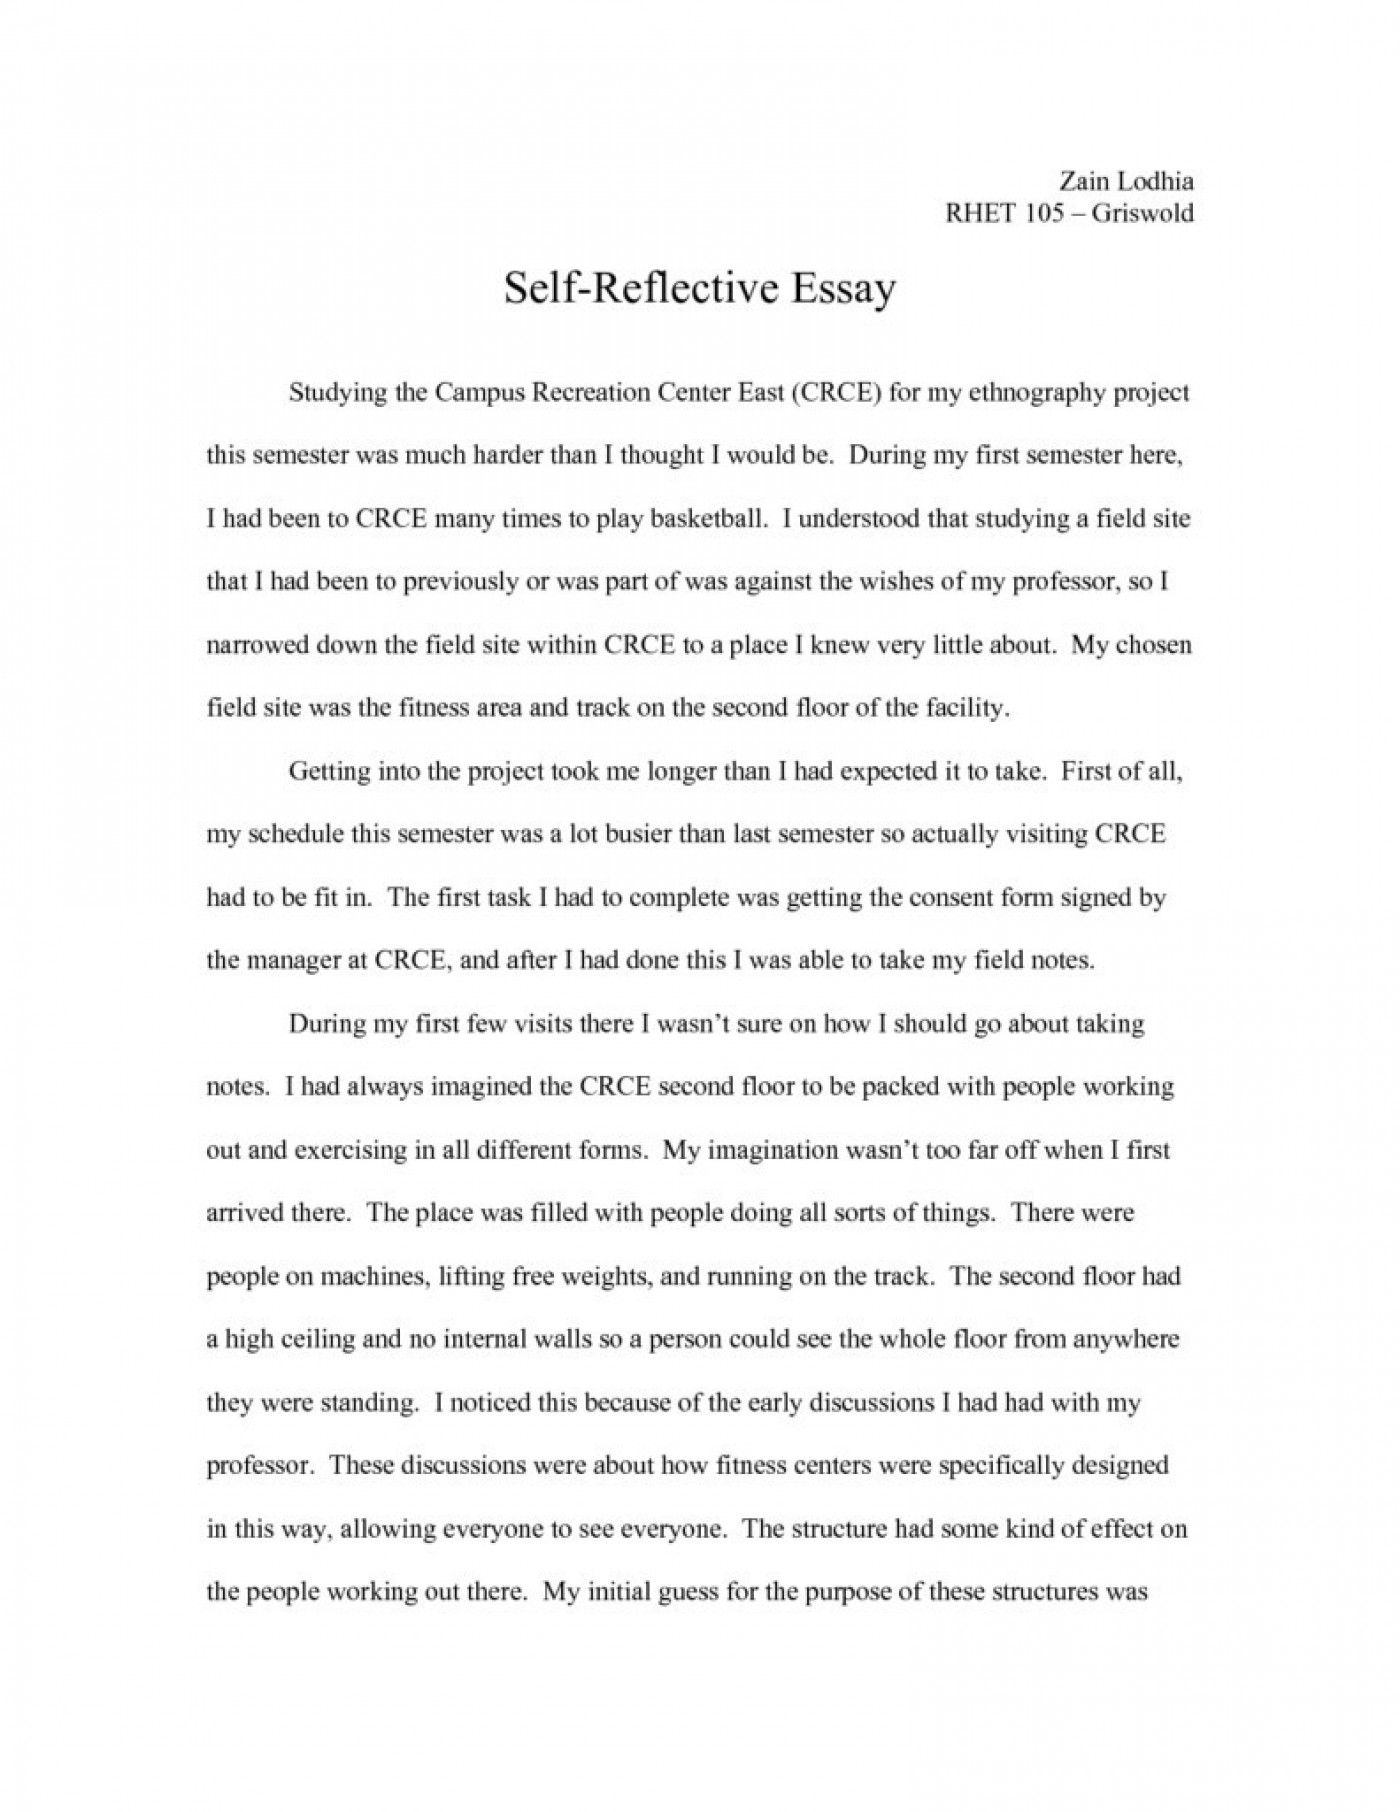 007 pak education info first day college essay for at quotes in narrative my hindi experience